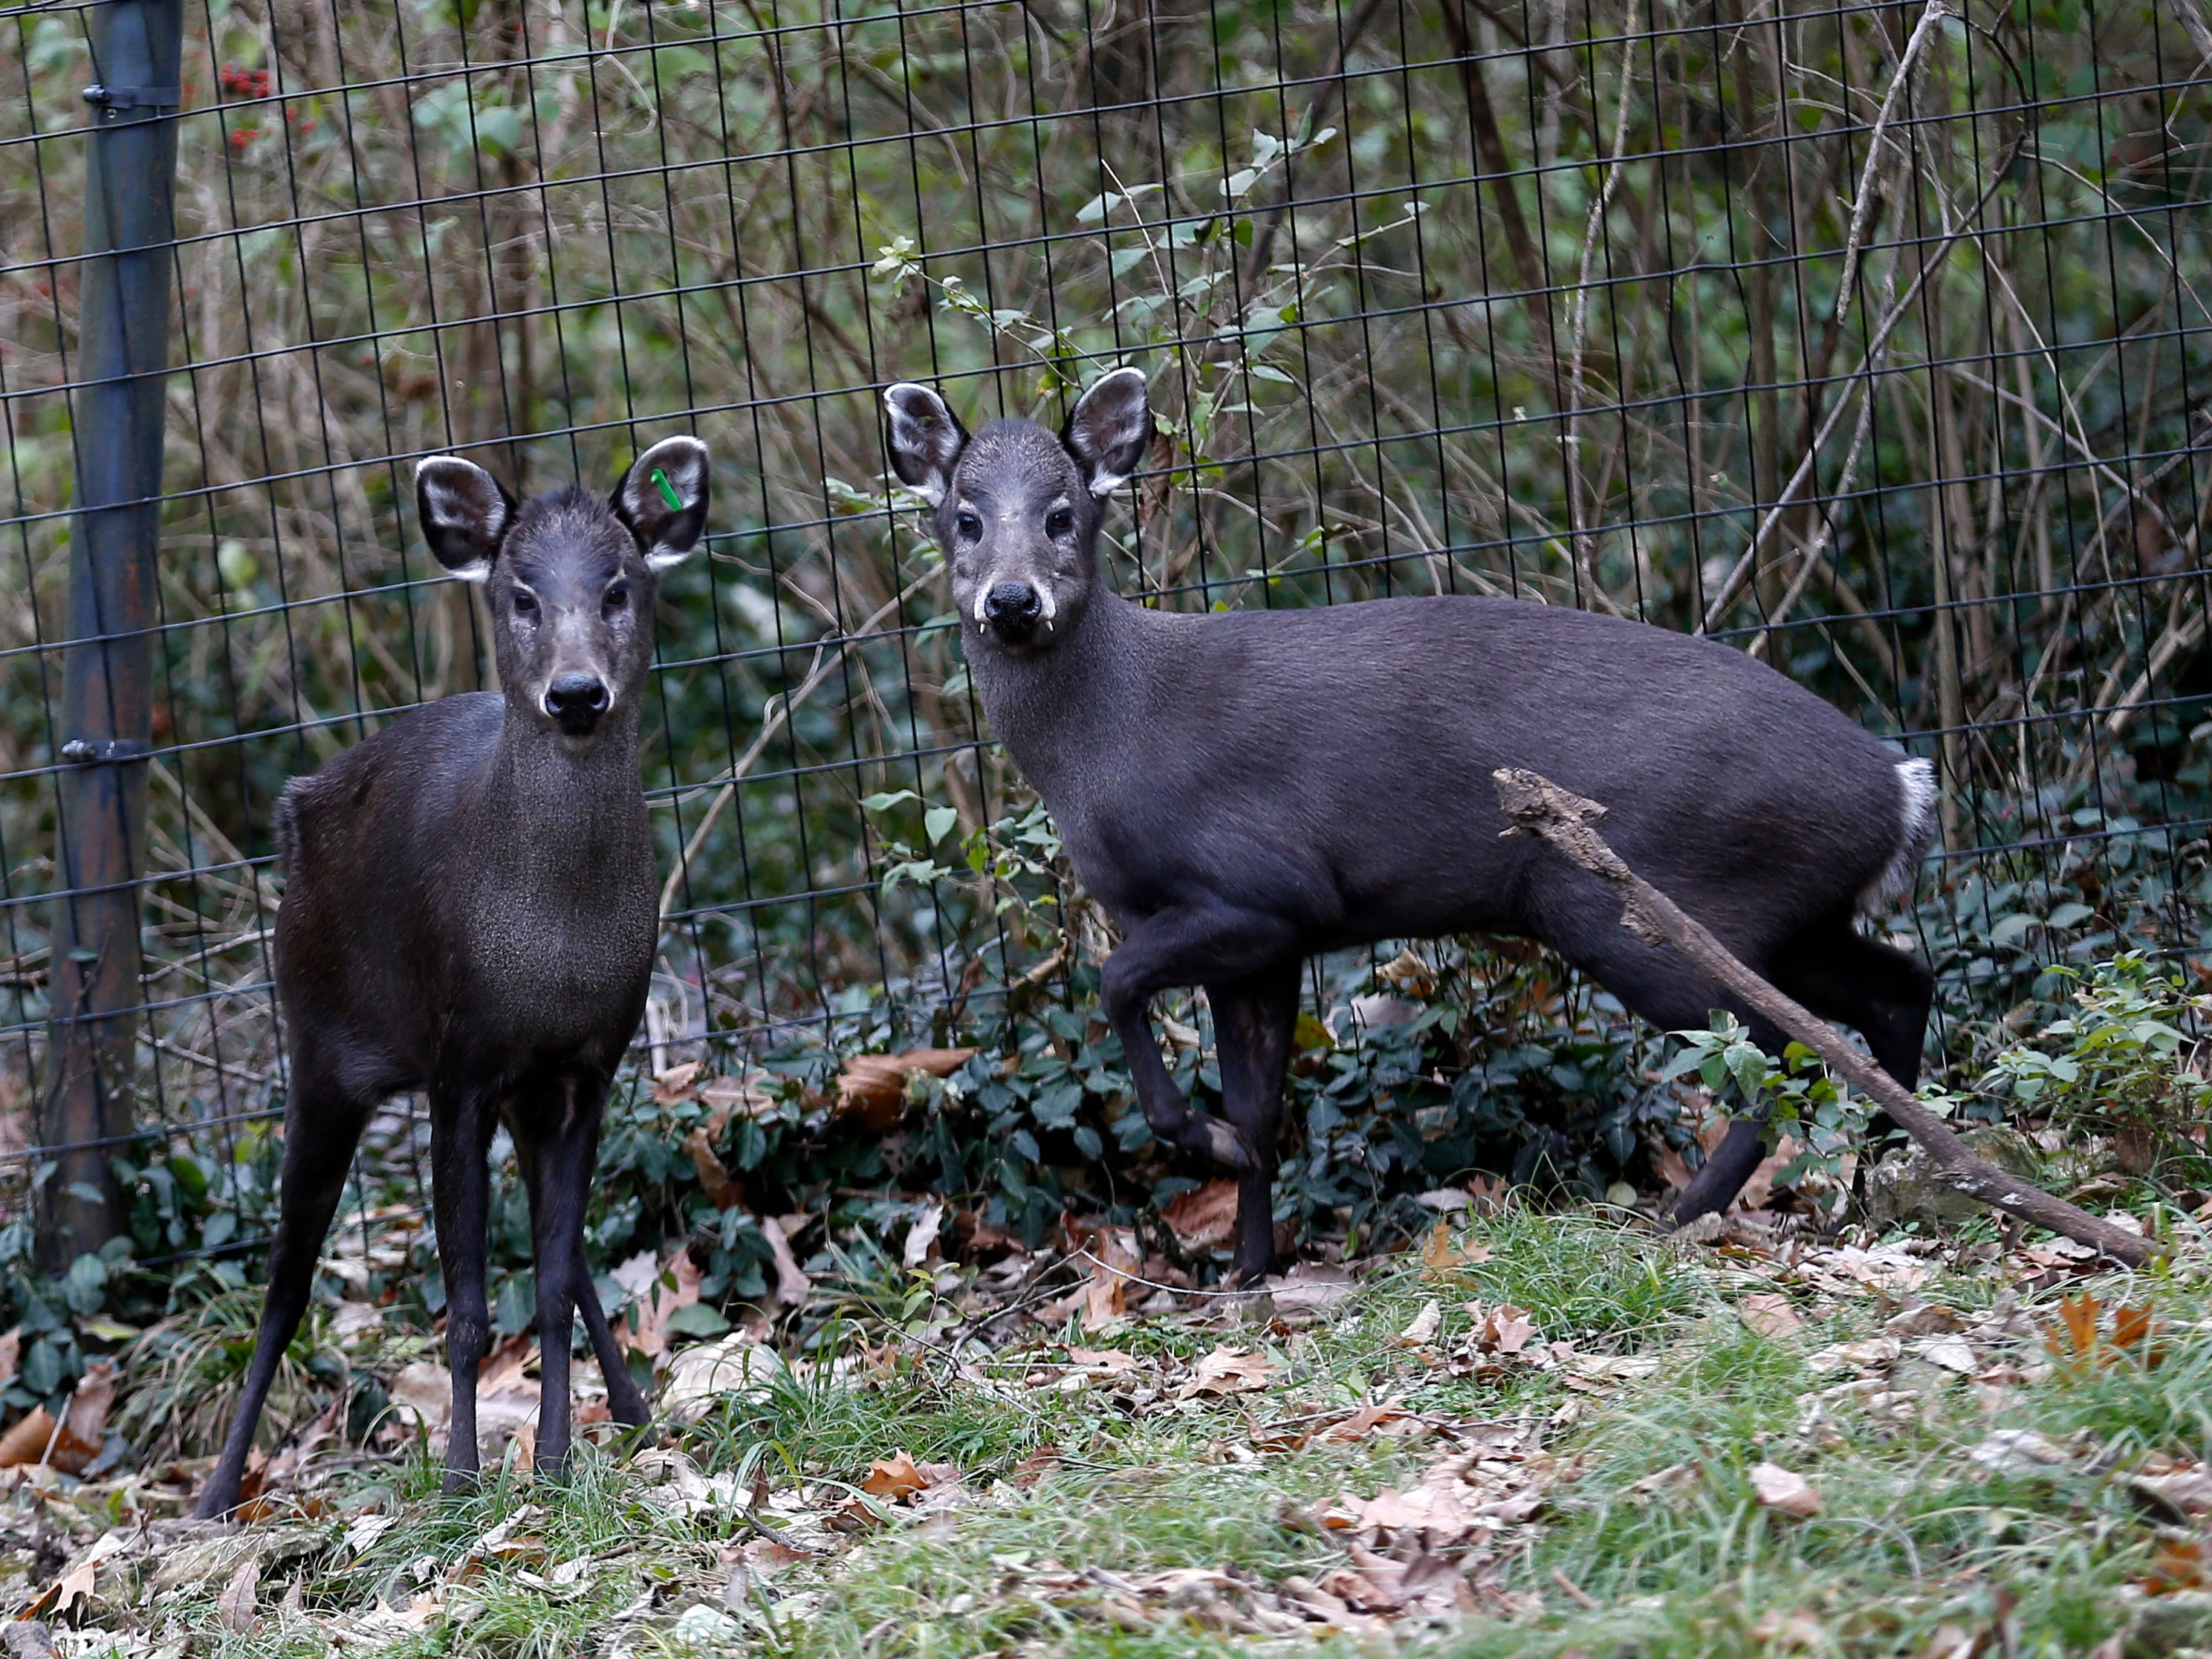 The tufted deer is found in Asia and the male deers can be identified by fangs protruding from their mouth.